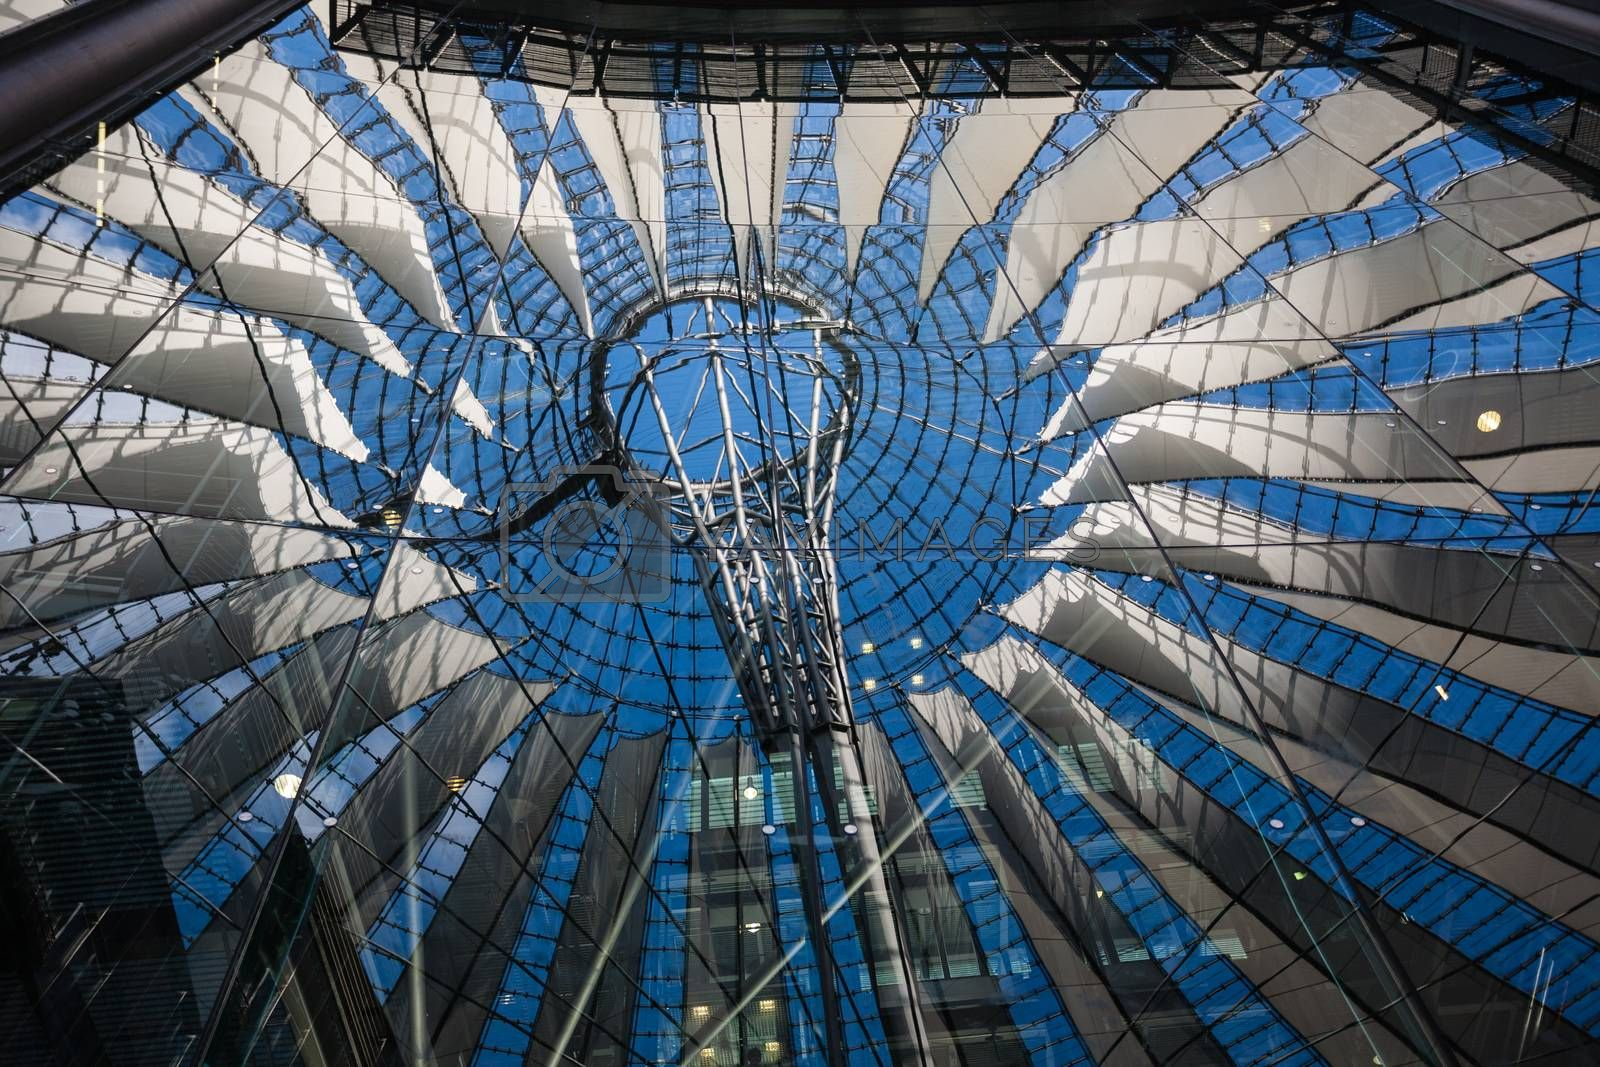 Reflections from the ceiling structure  in Berlin´s postdamer platz Germany